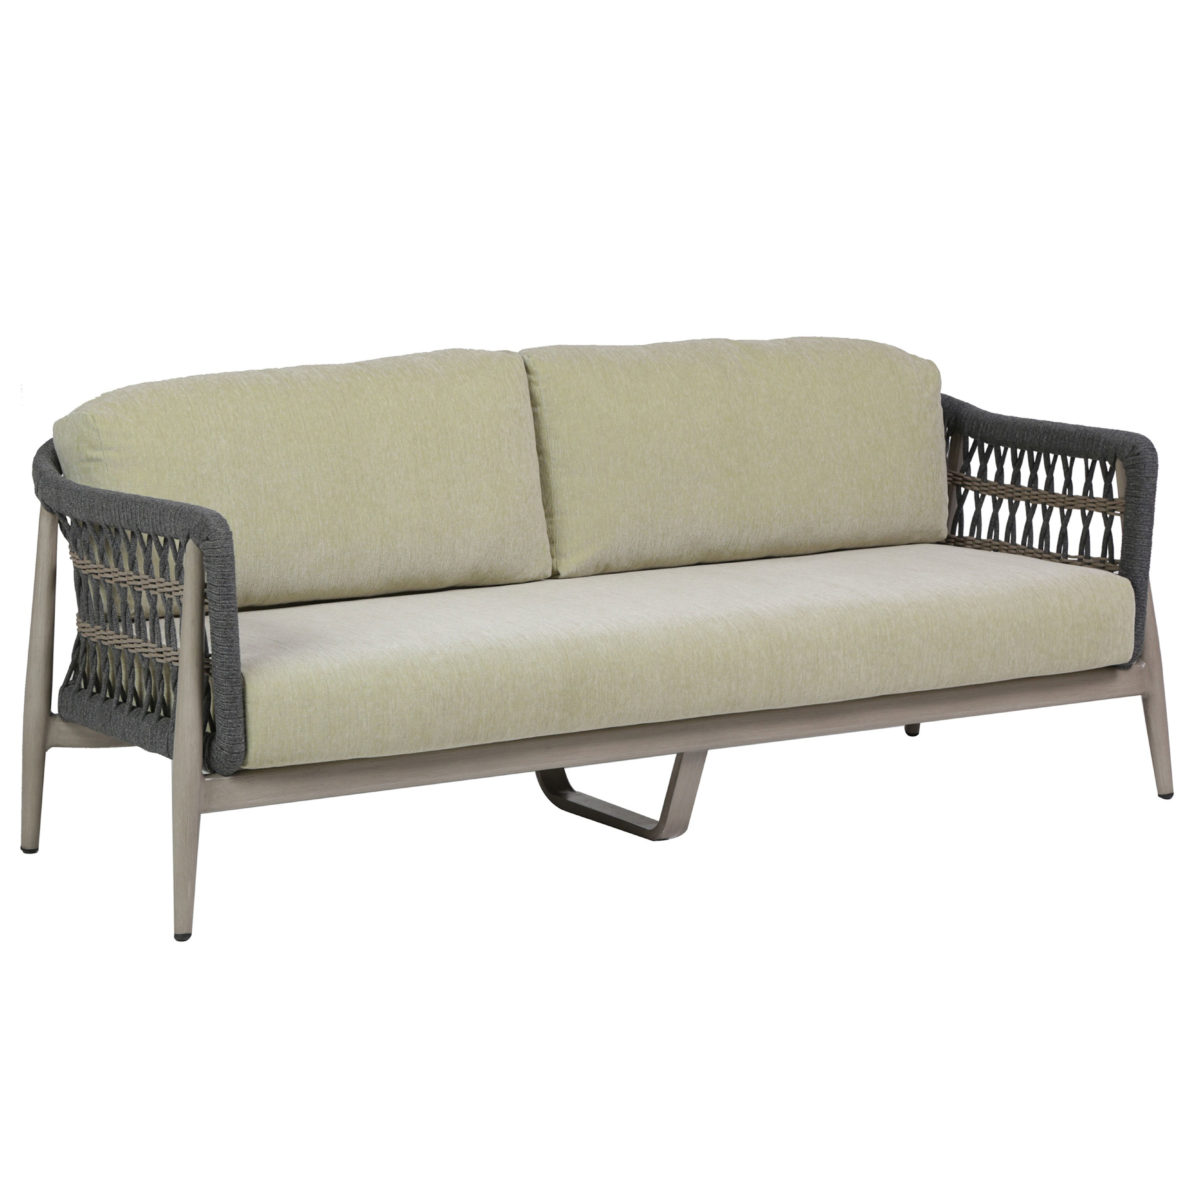 The Coconut Grove sofa Ratana in Aloe green cushions.